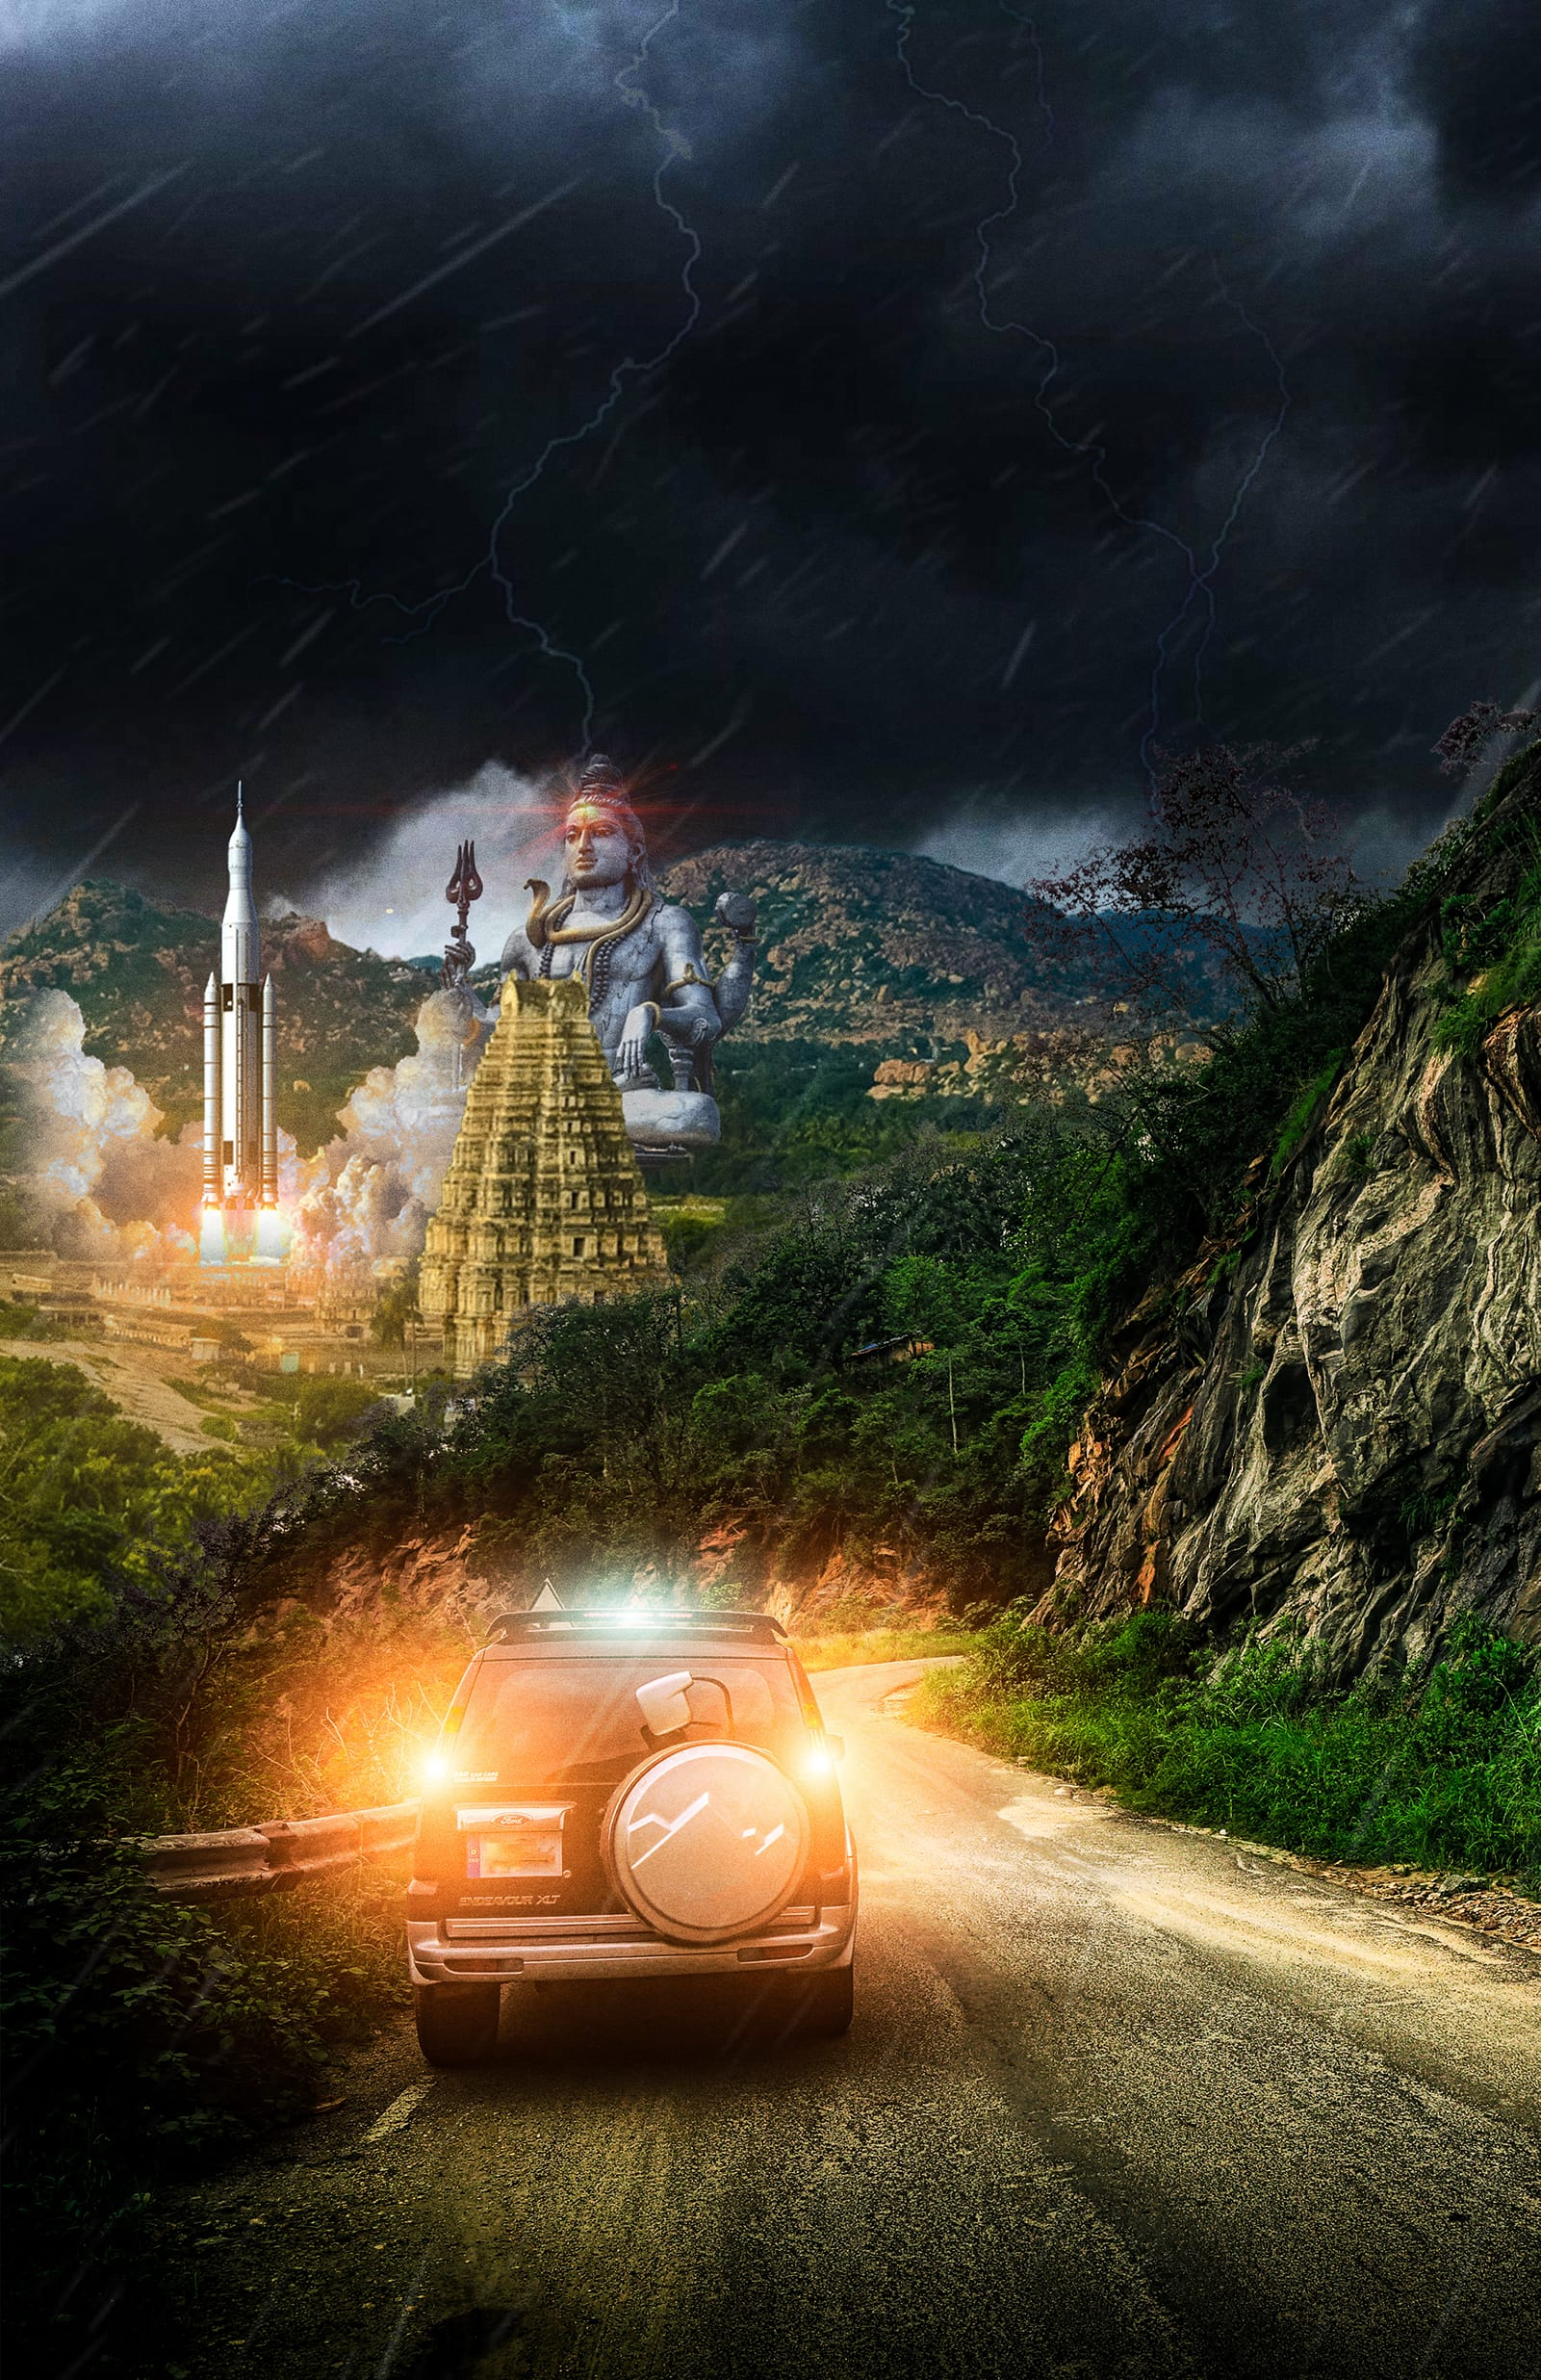 Jungle Spaceport in India Concept Art for Chapter 2 of Sicarionauts